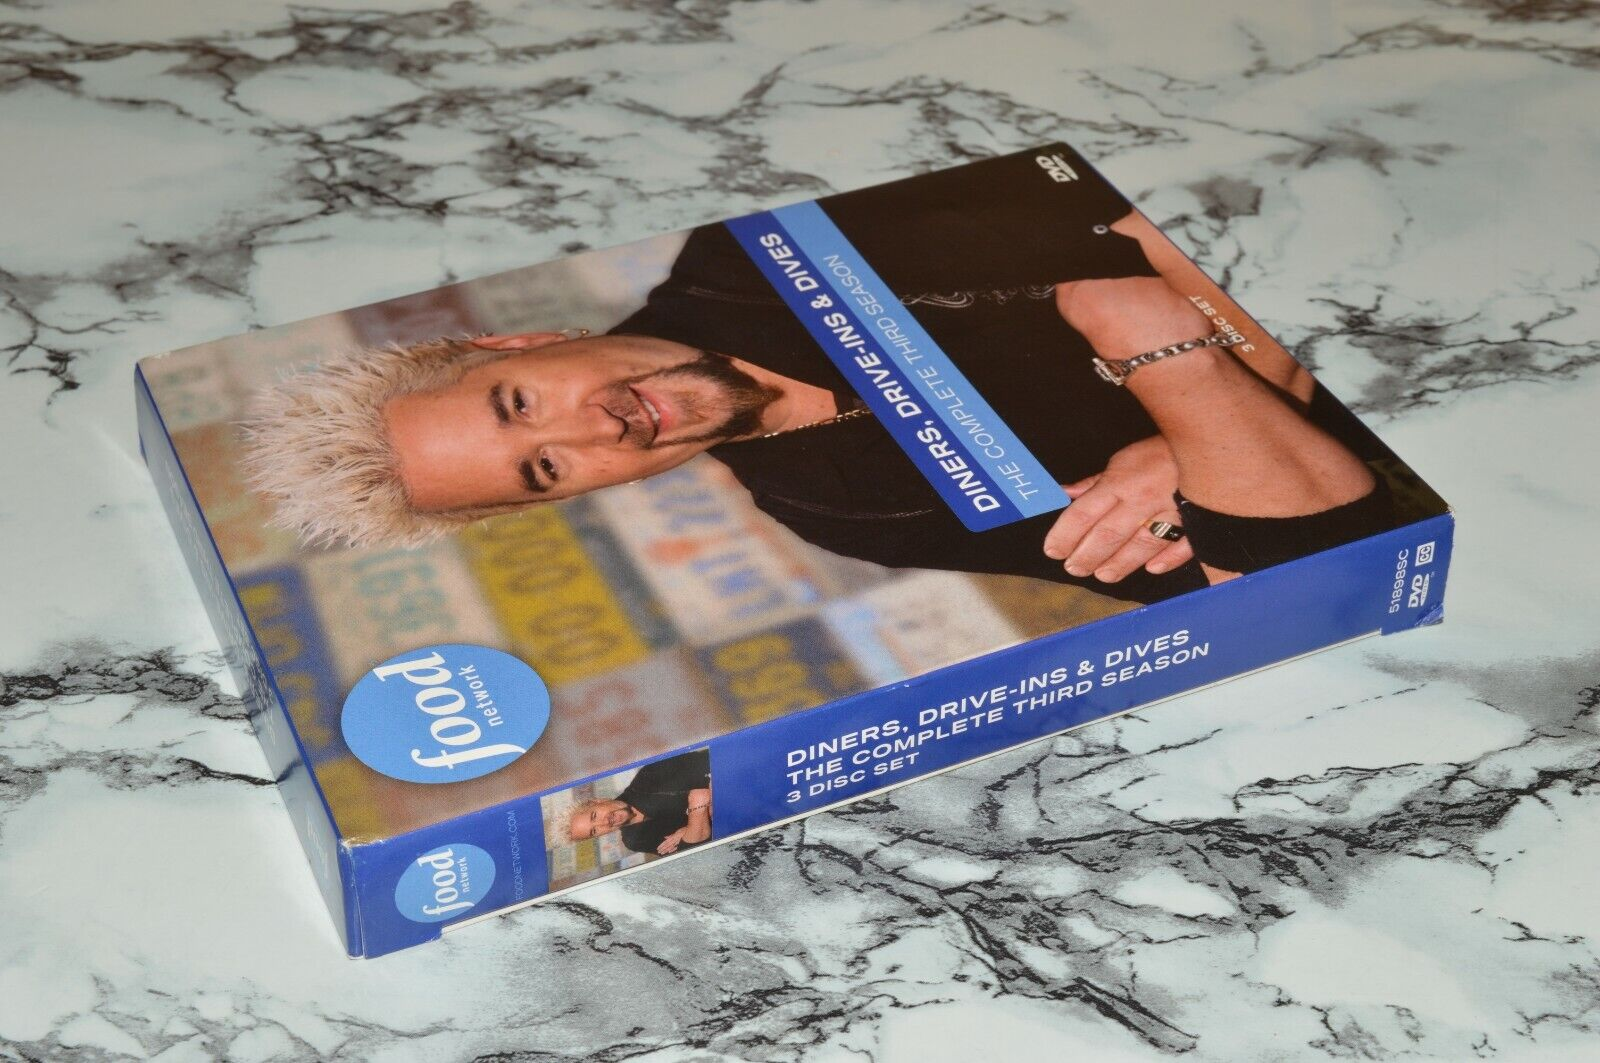 Diners, Drive-Ins Dives - The Complete Third Three / 3 Season DVD Box Set  - $12.68